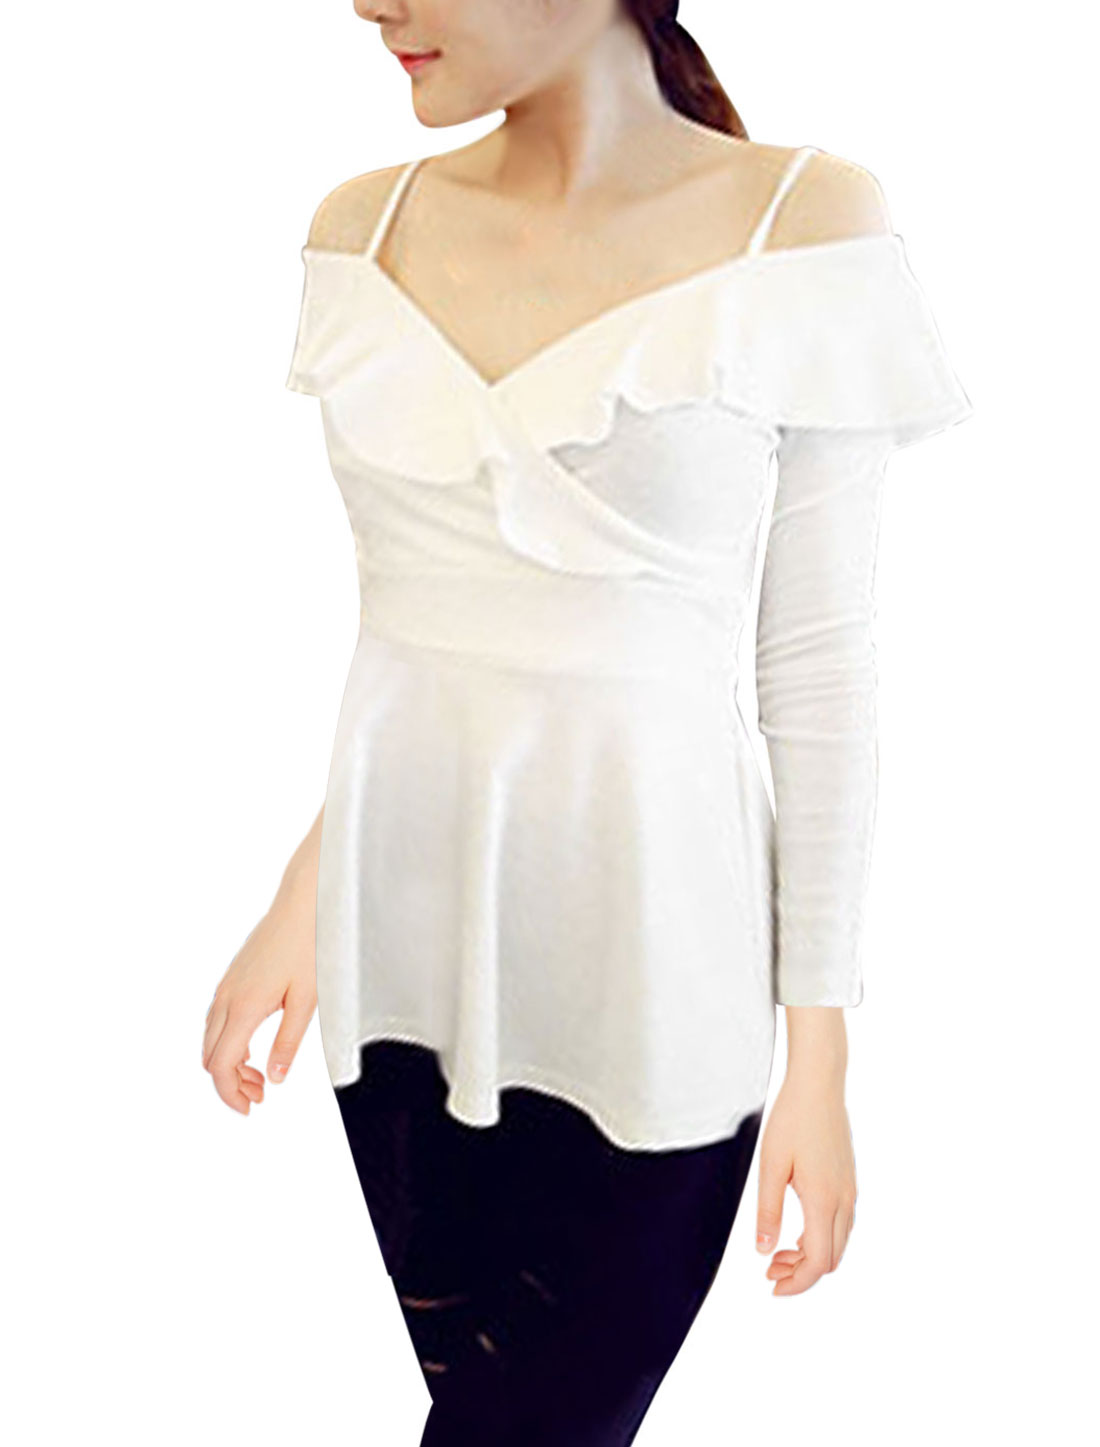 Ladies Pullover Long Sleeves Ruffled Detail White Top XS